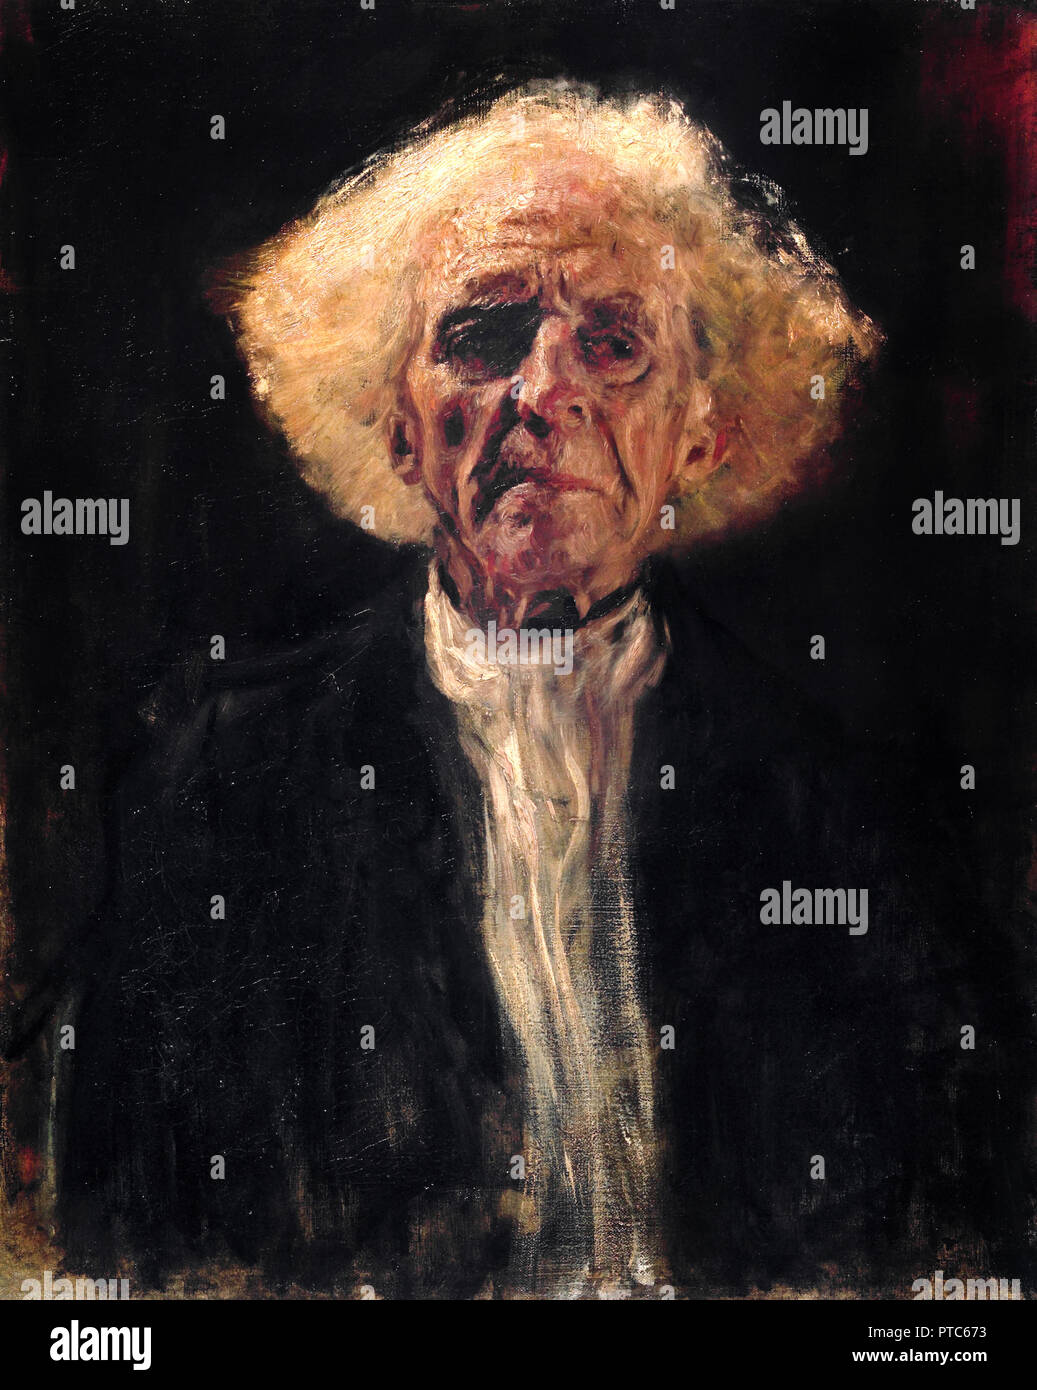 Gustav Klimt, Blind Man 1896 Oil on canvas, Leopold Museum, Vienna, Austria. - Stock Image